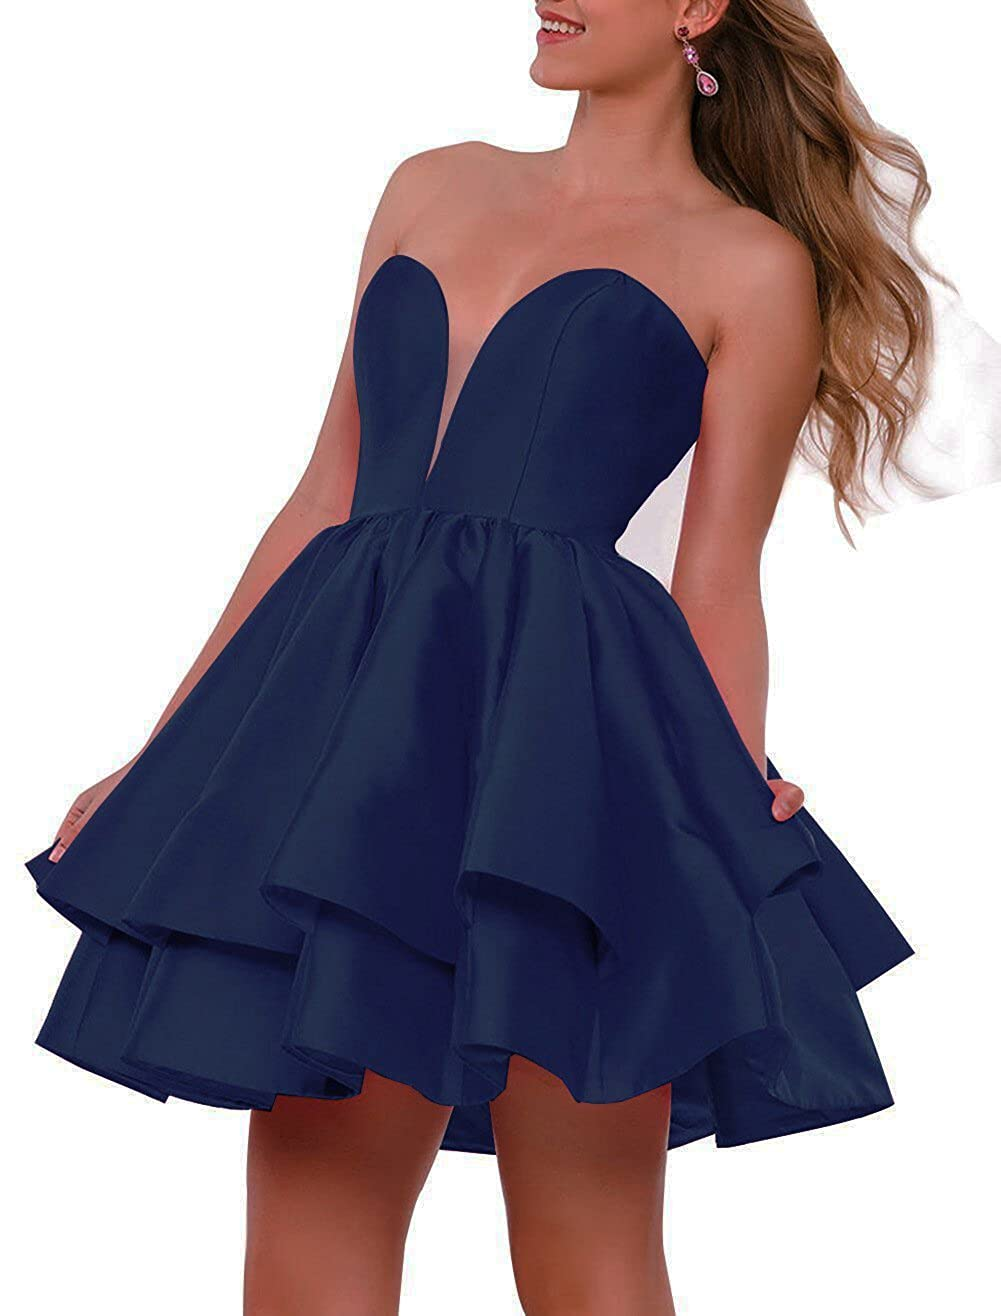 Navy bluee JQLD Women Strapless Short Homecoming Dresses Ruffles Satin Prom Gown Formal with Pocket